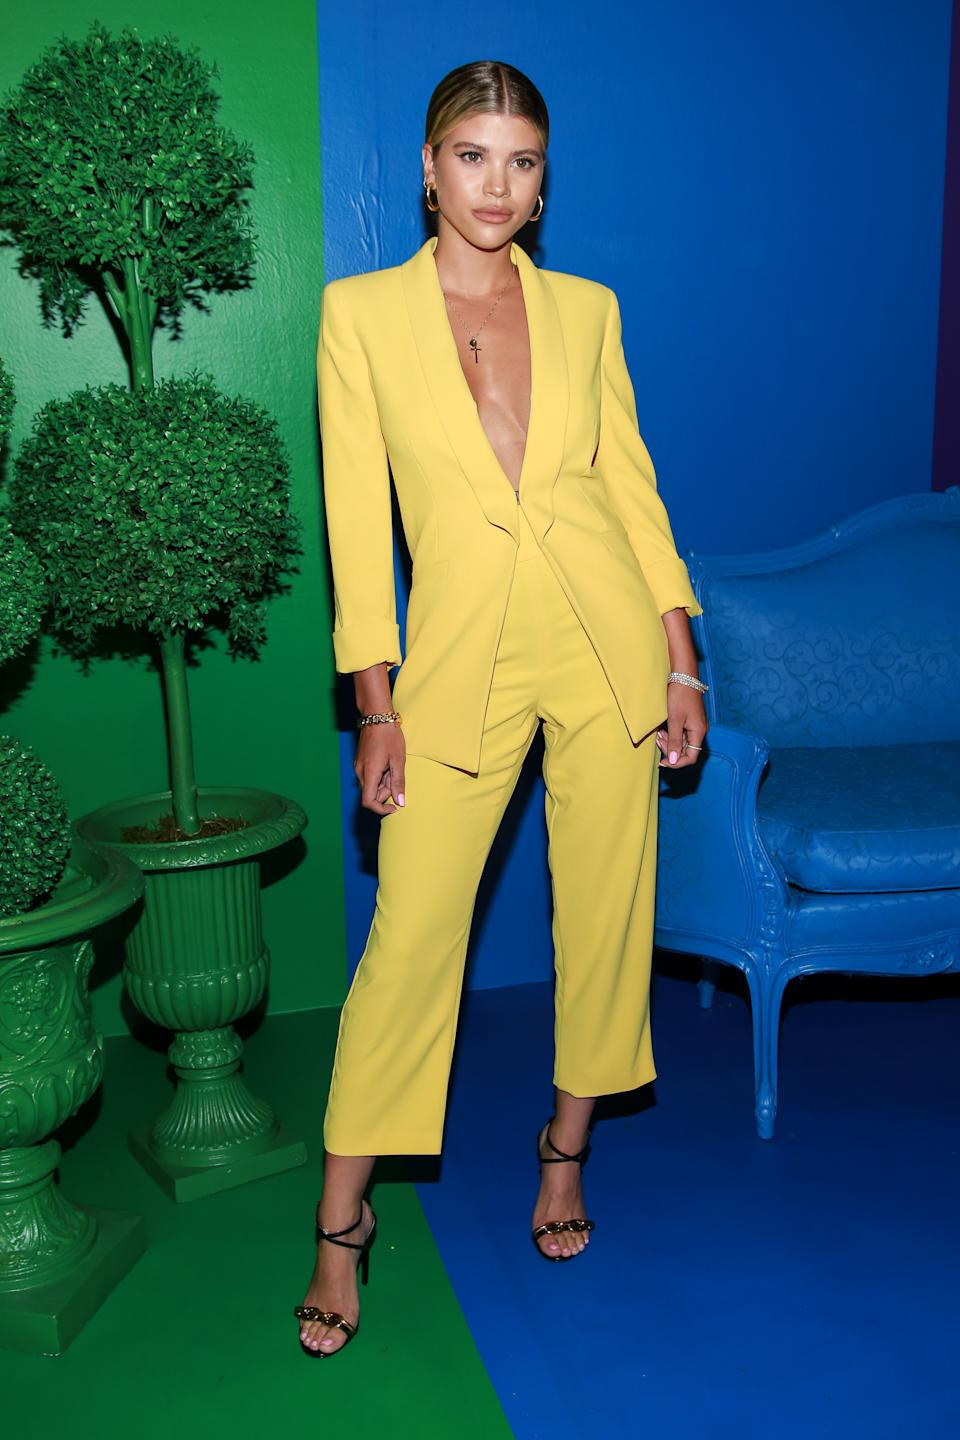 NEW YORK, NY - JUNE 18: Sofia Richie on June 19, 2019 in New York City. (Photo by Jason Mendez/Getty Images)